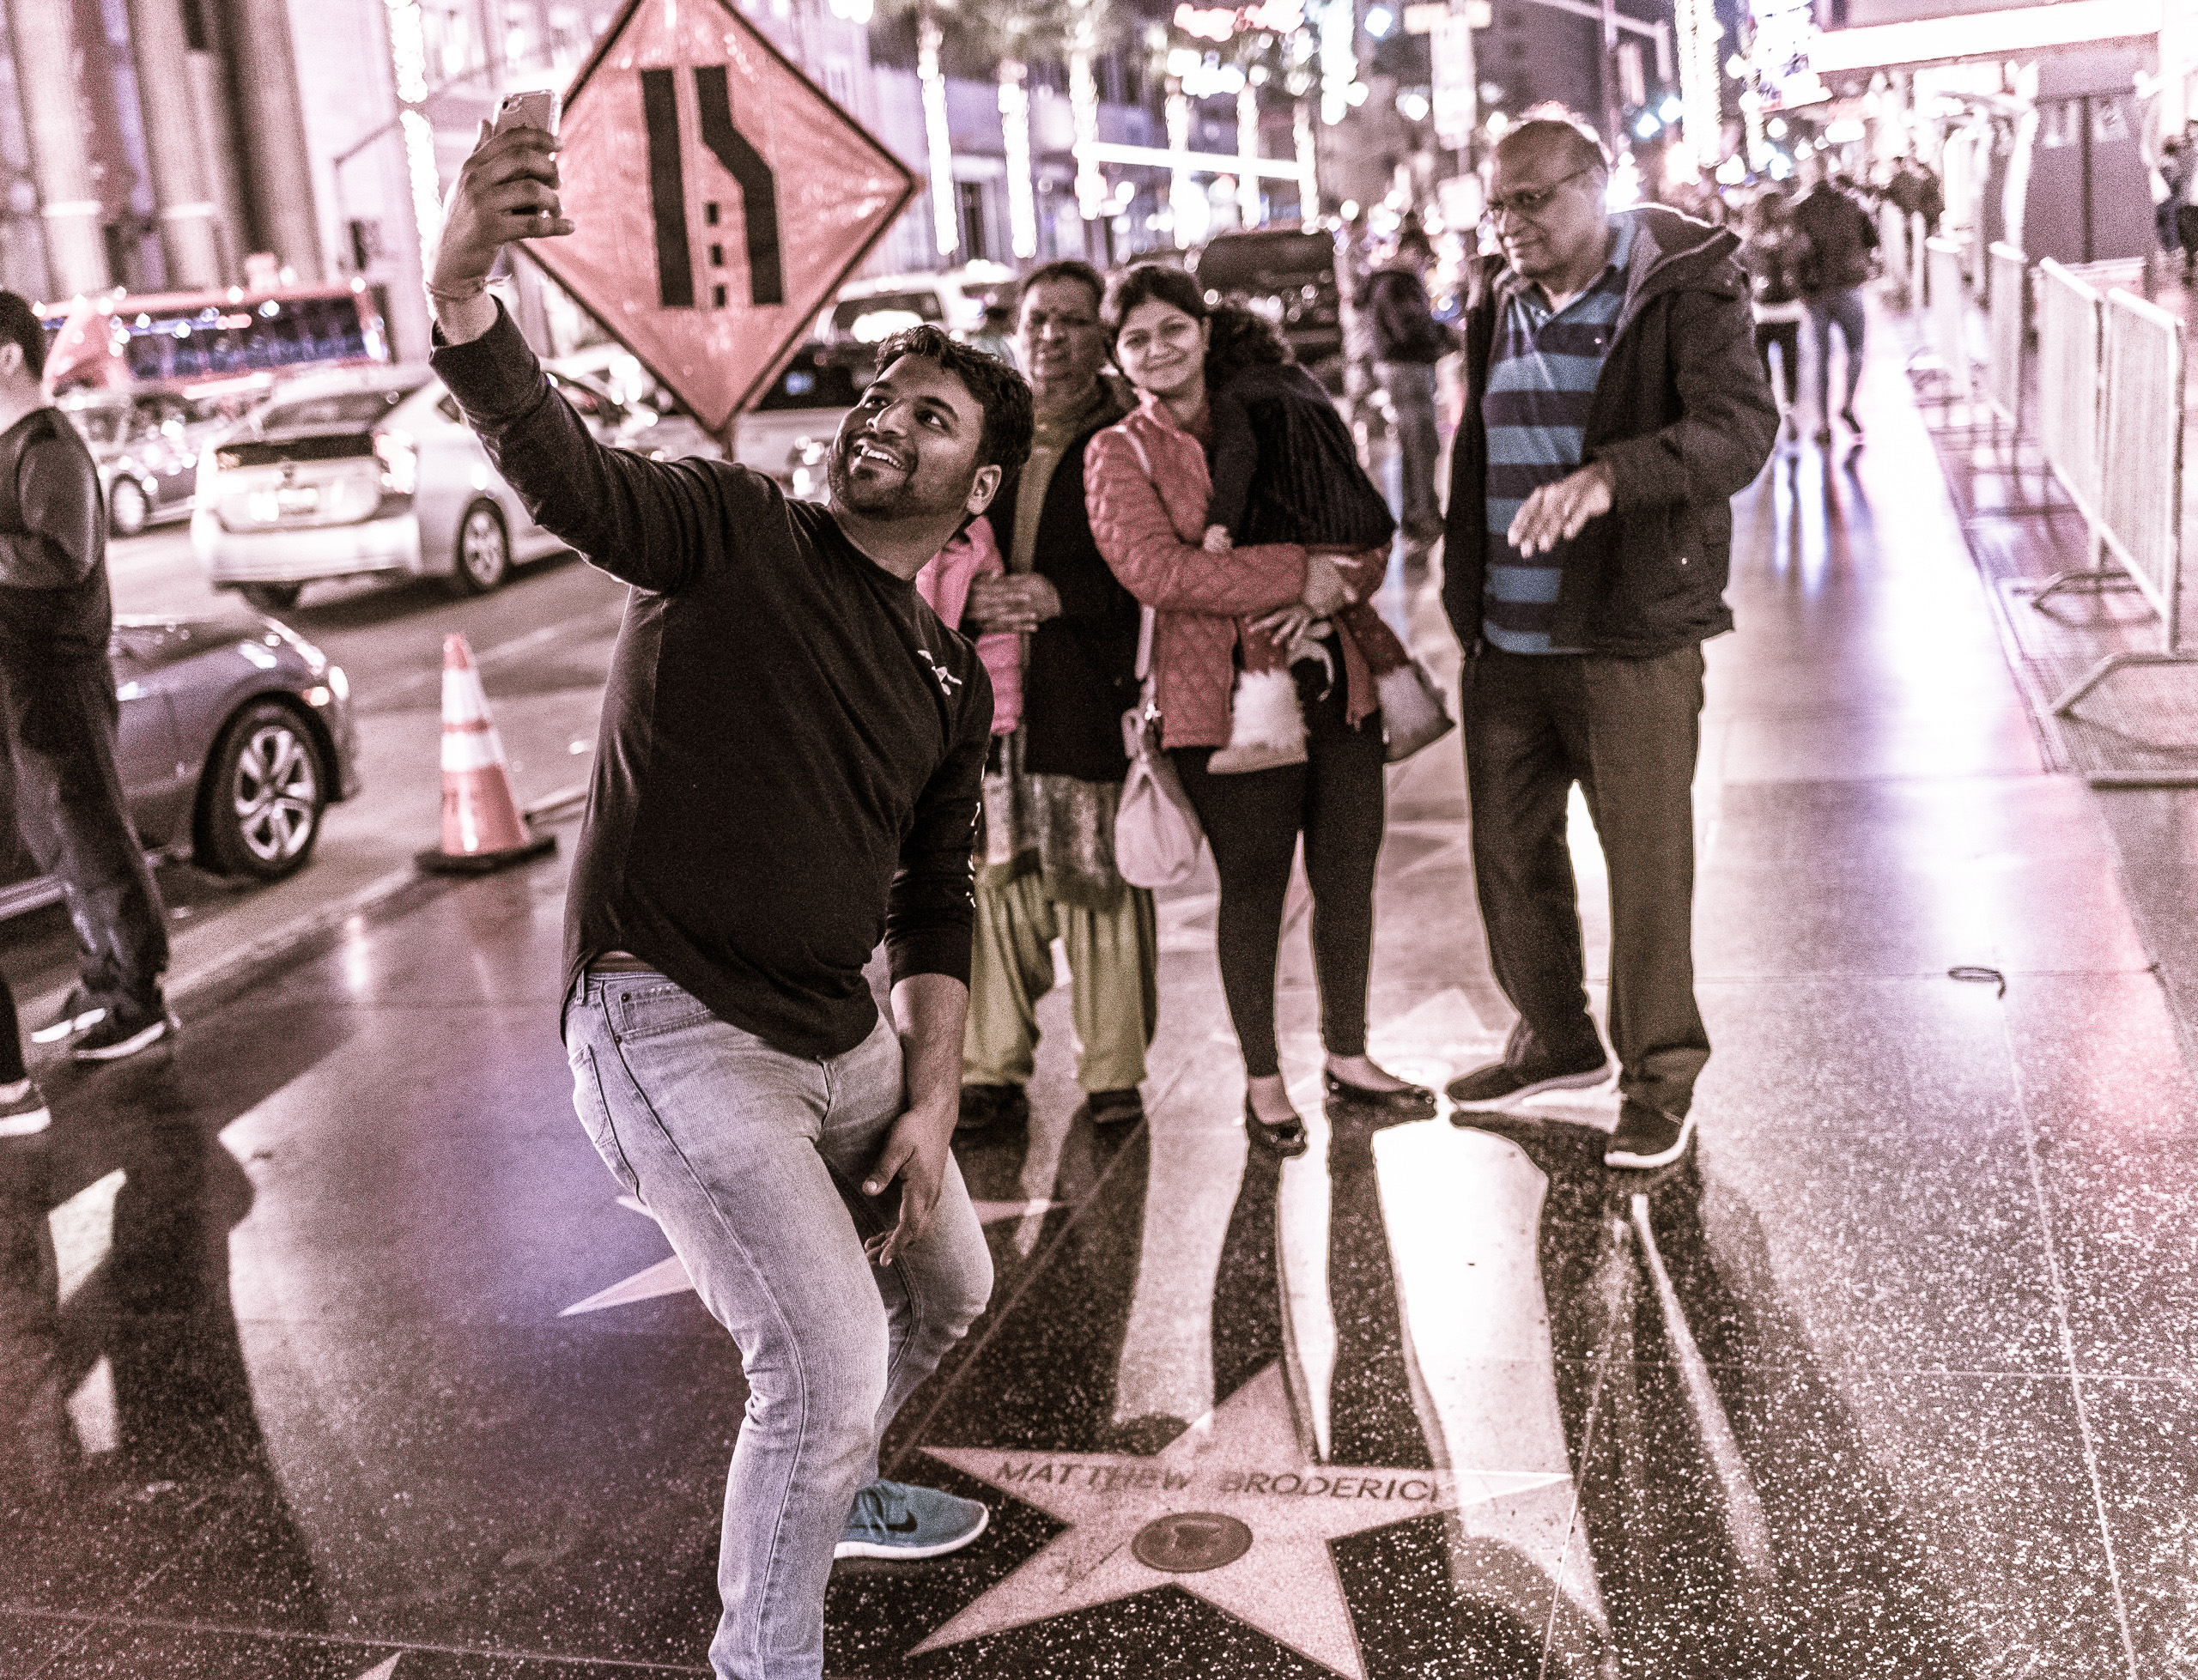 a man stands over Matthew Broderick's star on Hollywood Blvd, holds his phone high in the air above him, and takes a selfie with the star